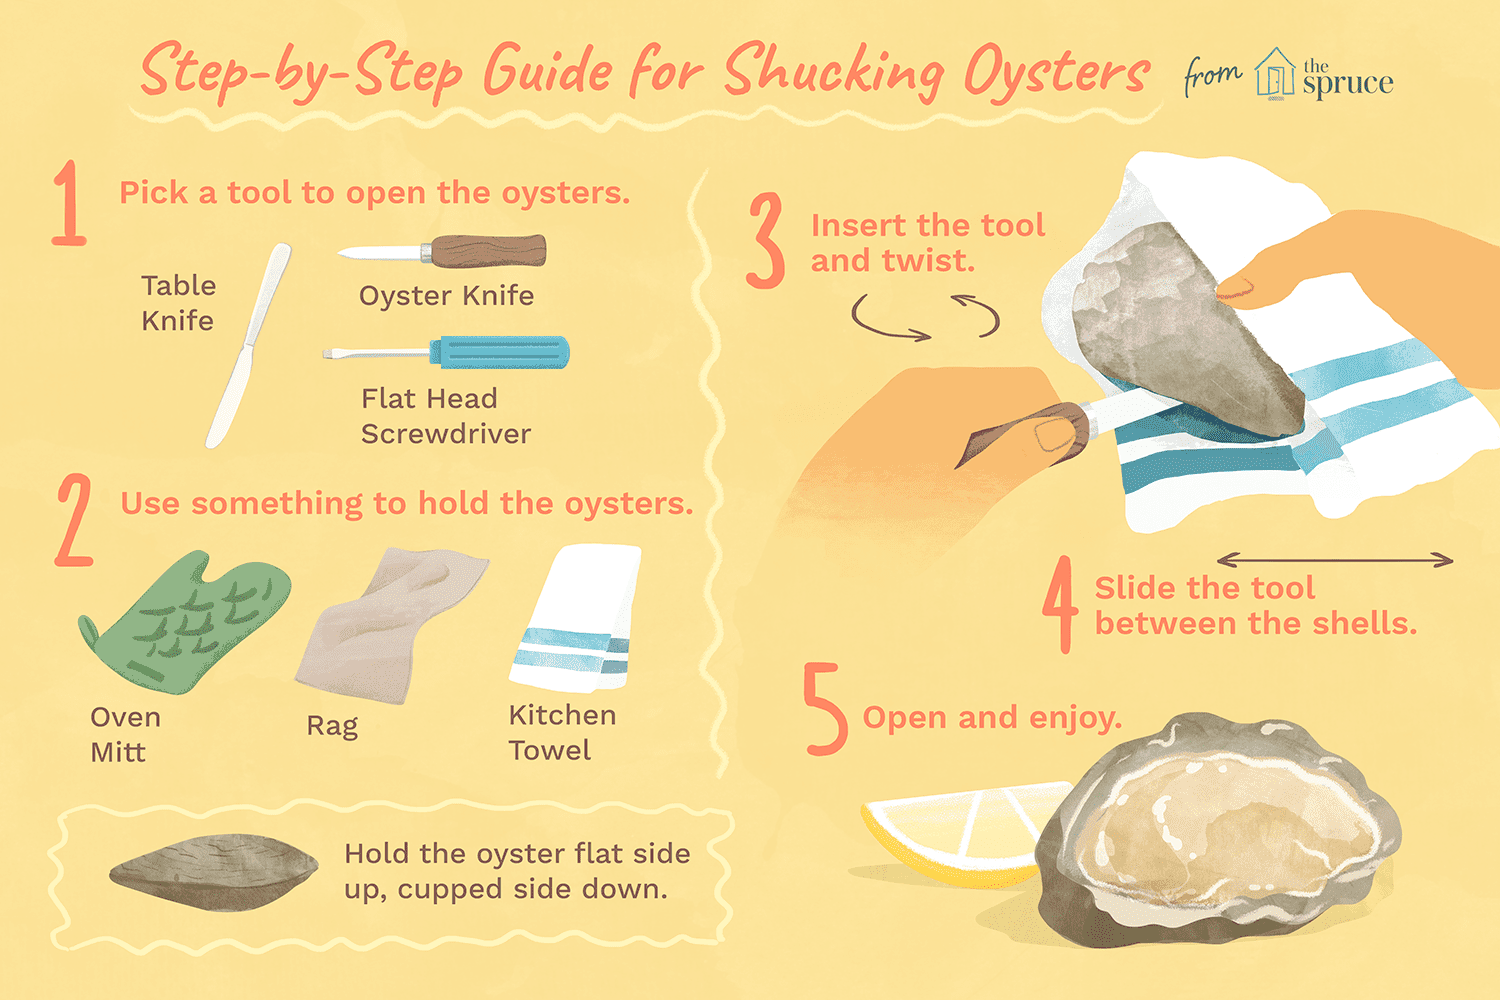 Illustrated guide to shucking oysters